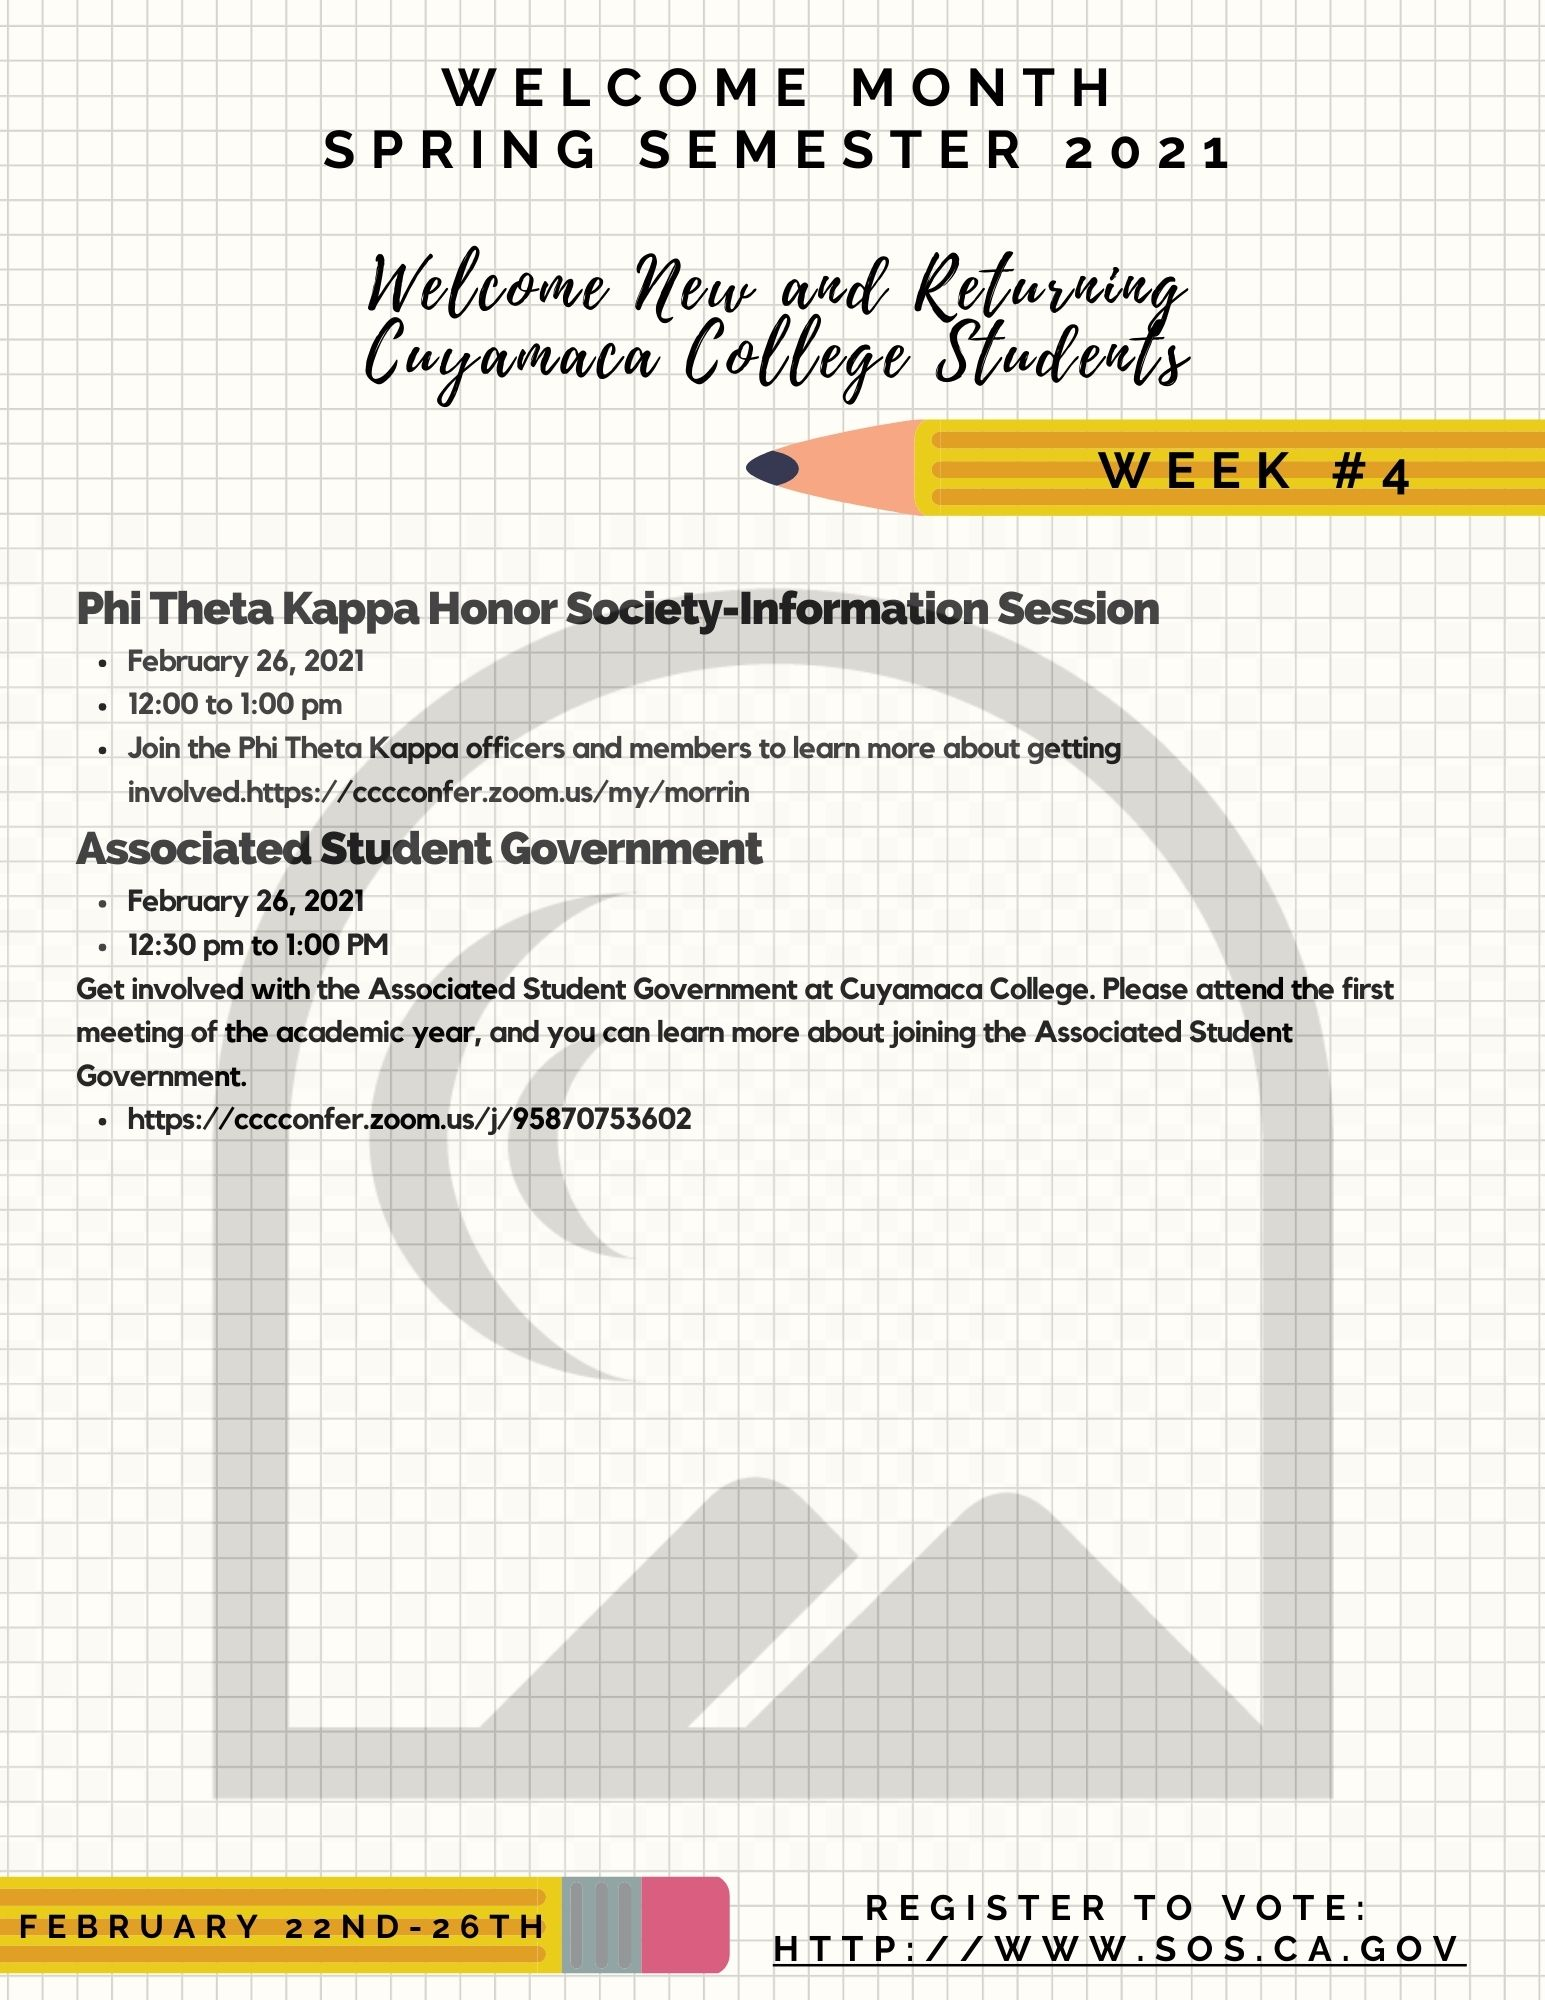 Welcome Month Week 4